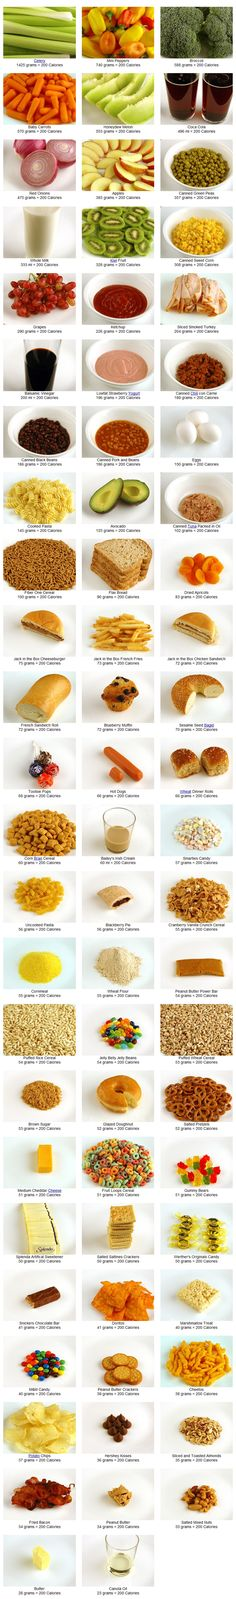 List of foods under 200 calories. In general Best Foods at the top.